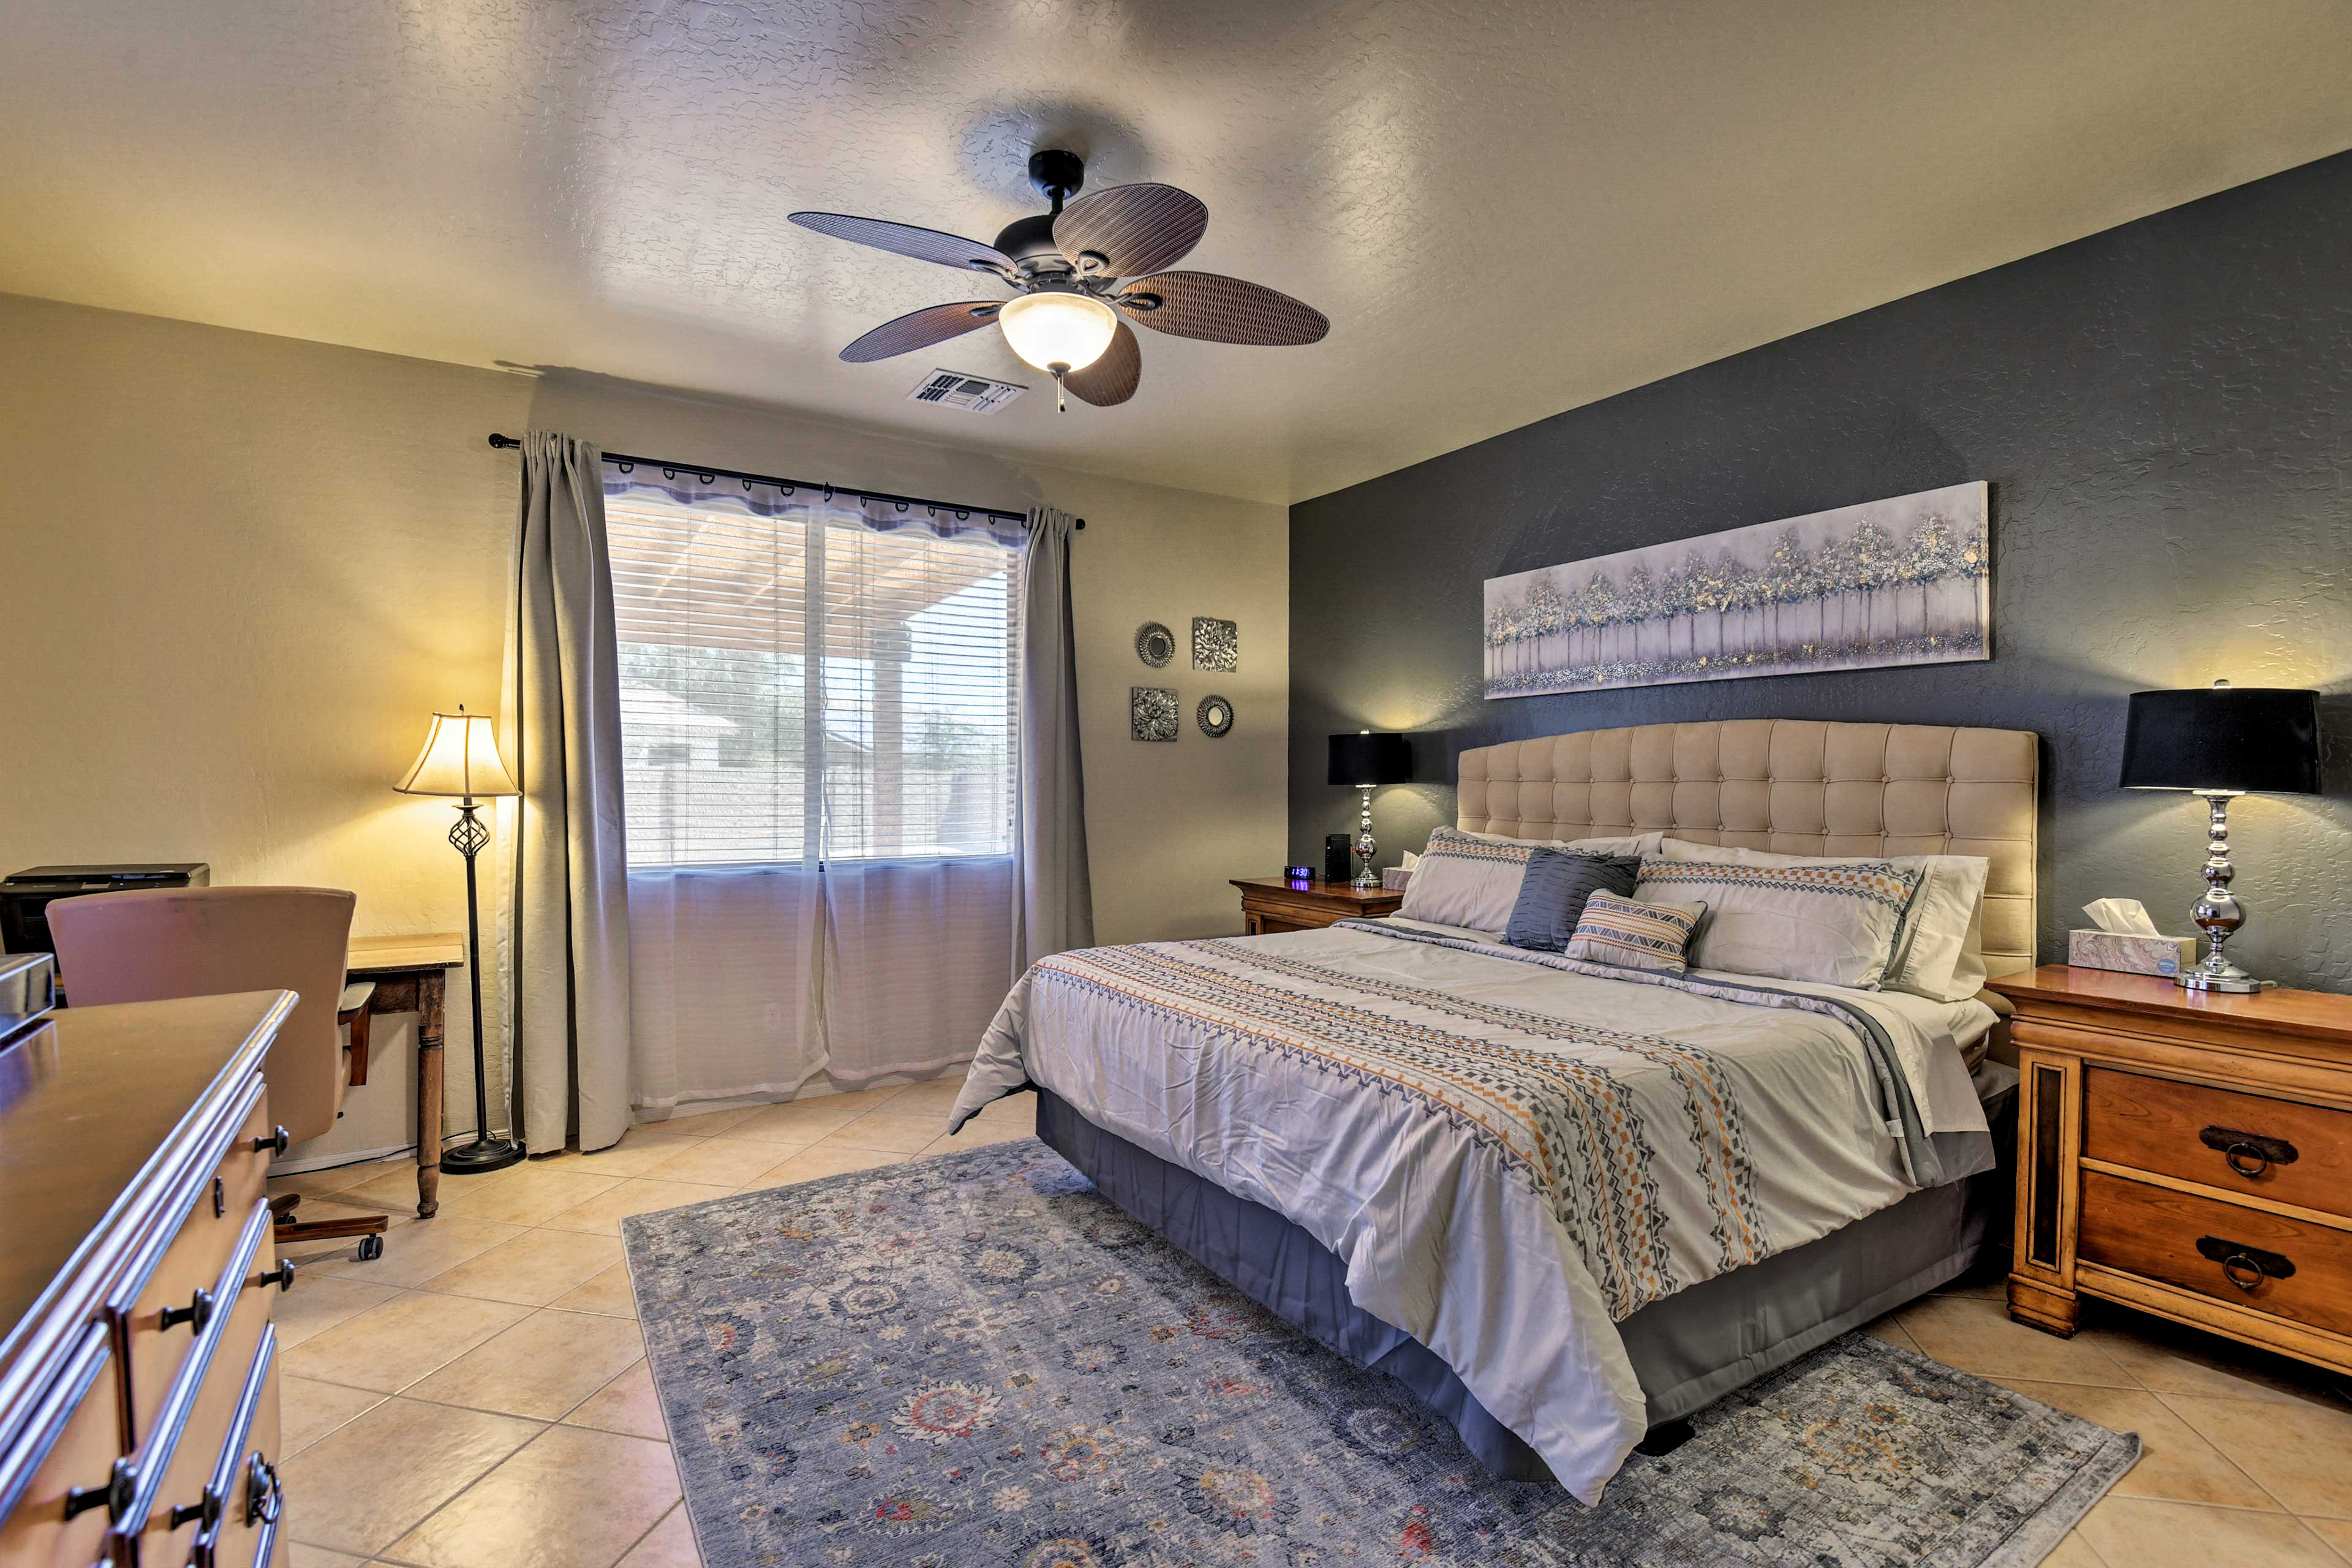 Come bedtime, take solace in one of the 4 bedrooms.